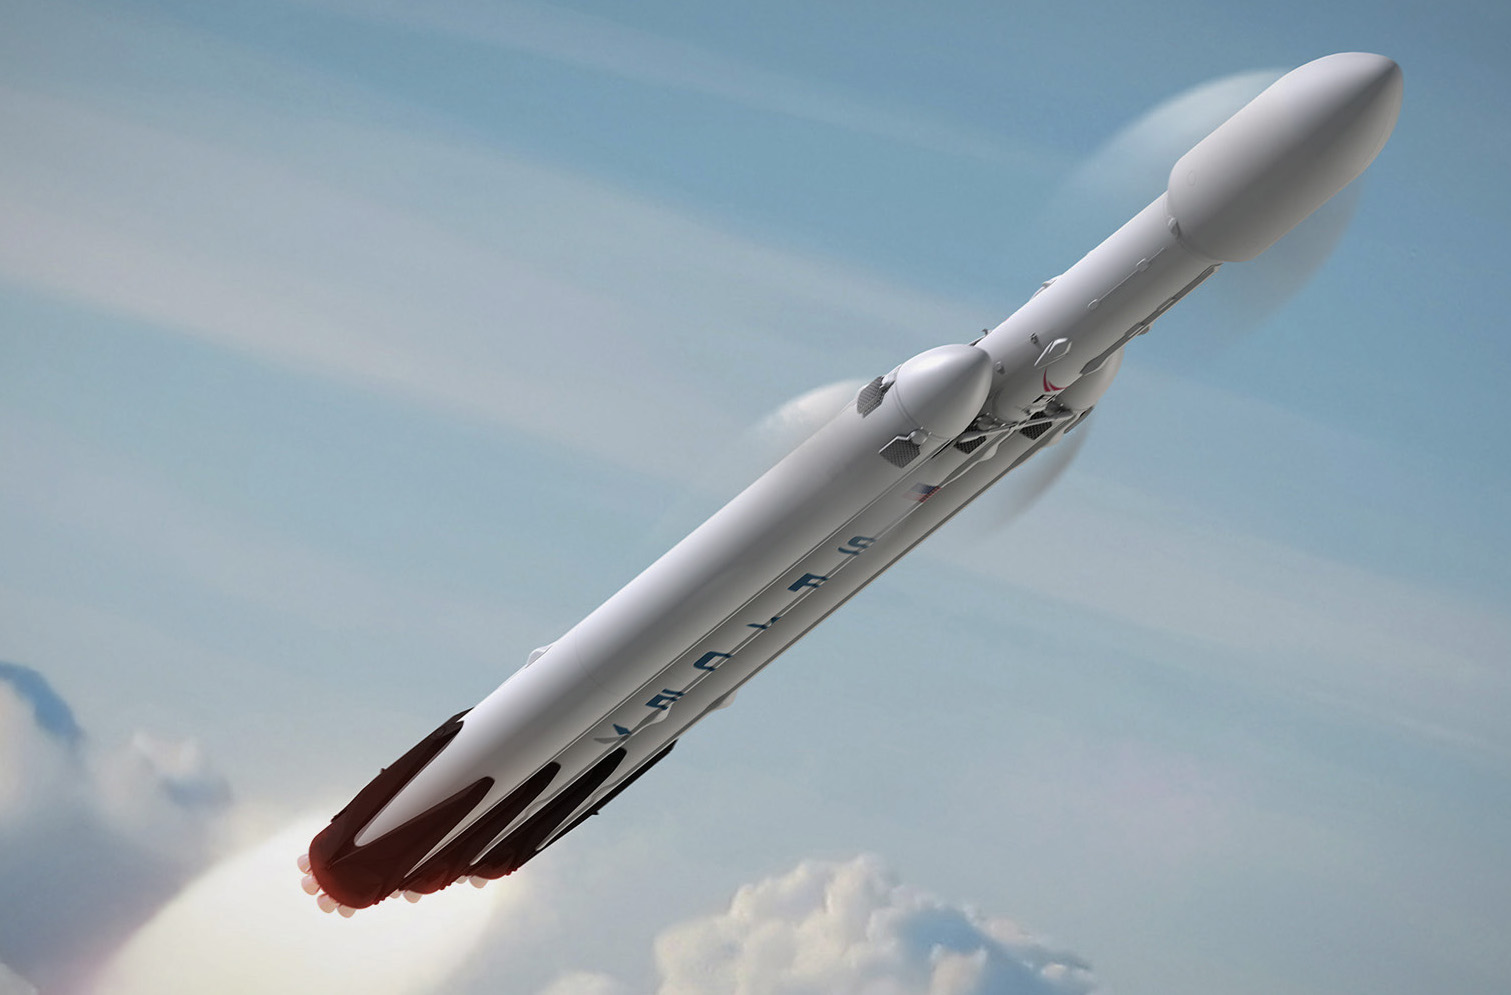 Artist's concept of the Falcon Heavy rocket, which will lift off powered by 27 Merlin main engines, generating nearly 4 million pounds of thrust. Credit: SpaceX